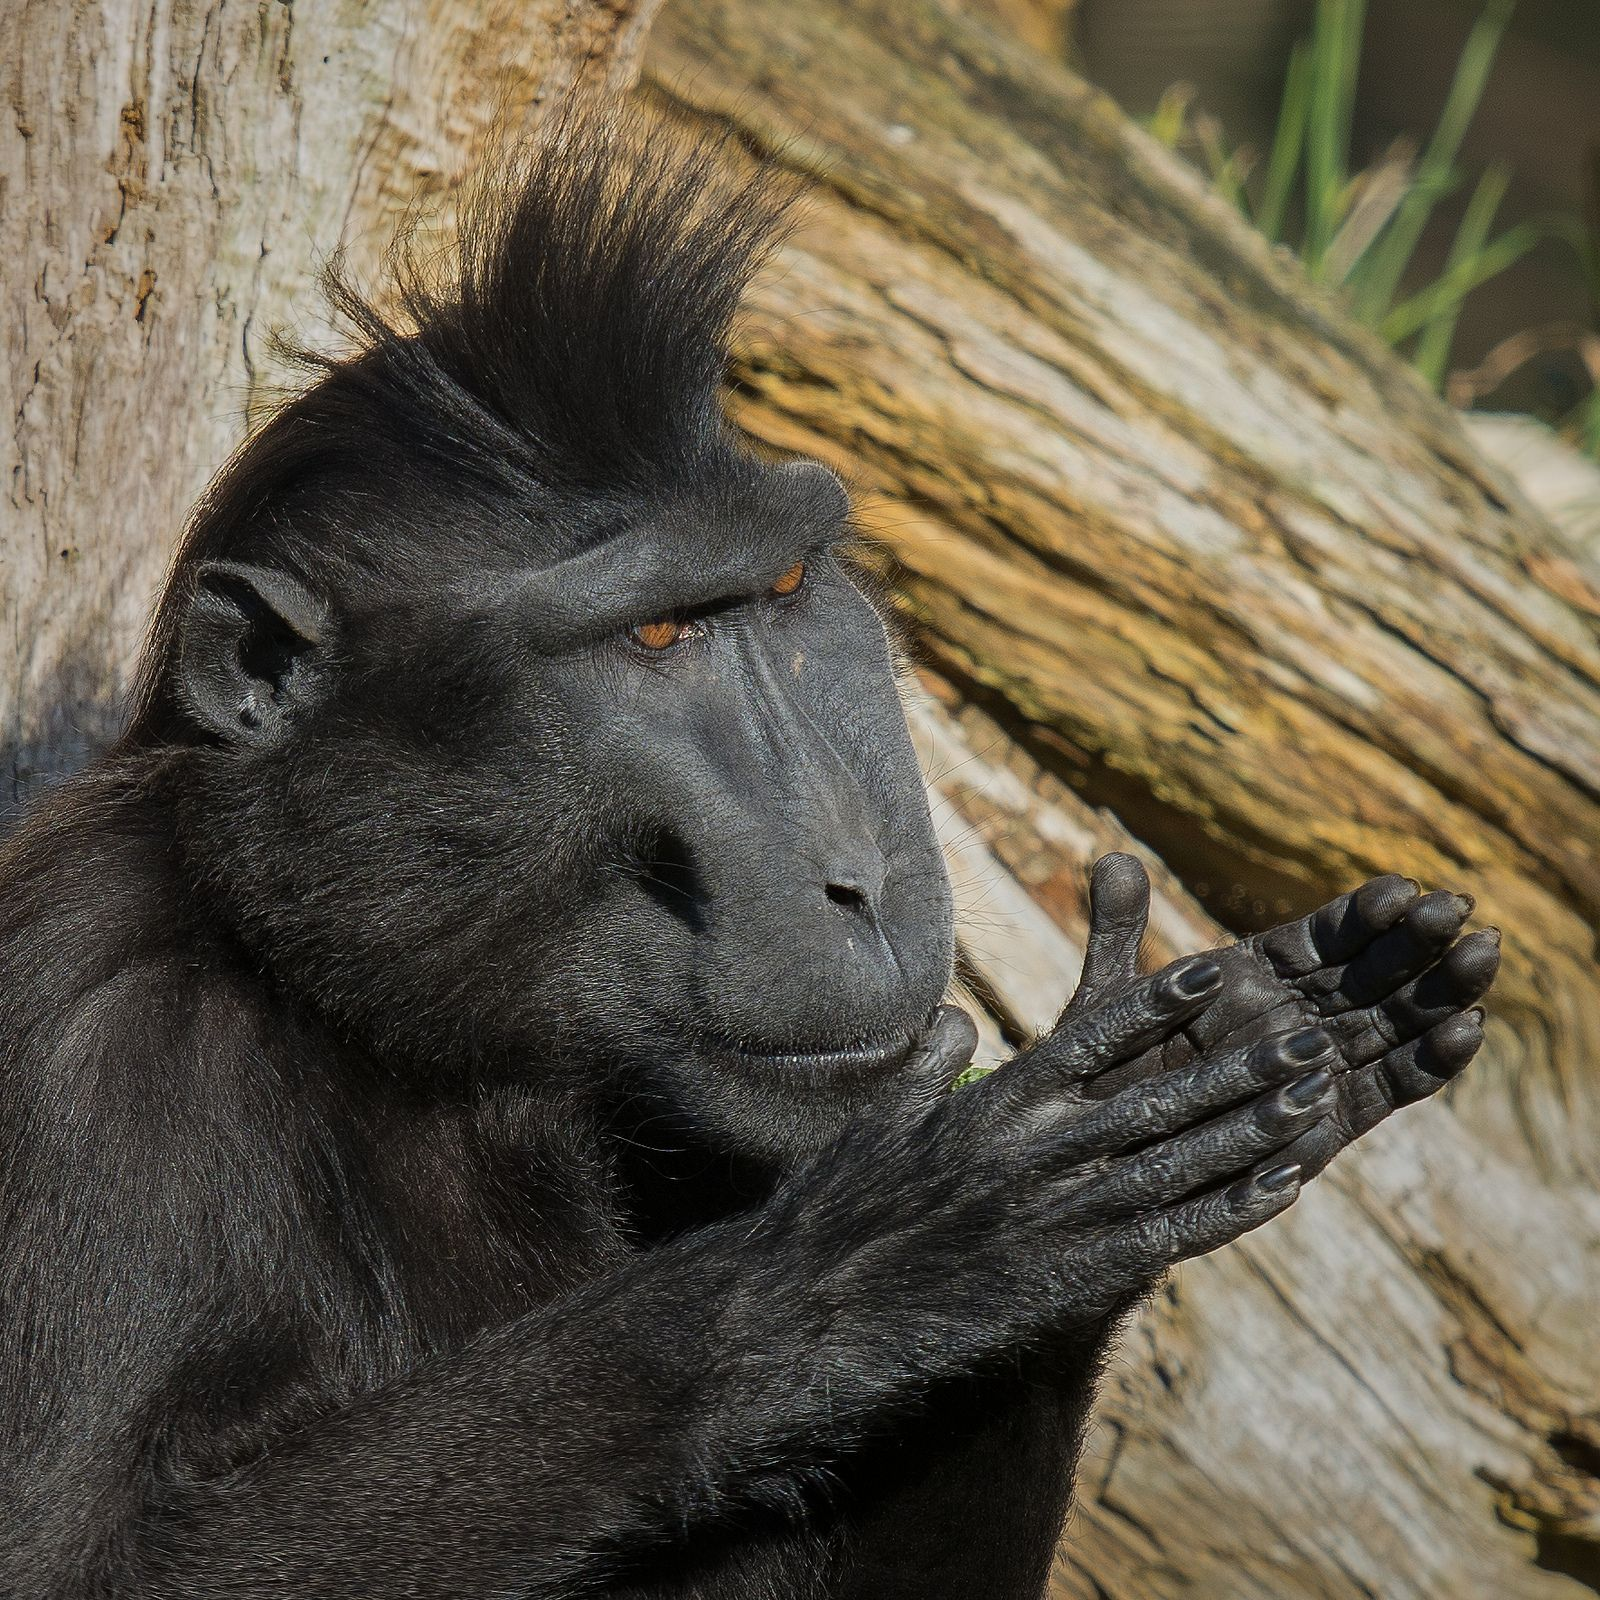 https://flic.kr/p/qZDgkS | Kato - Sulawesi Crested Black Macaque @ Durrell Wildlife Conservation Trust | I think I may have caught Kato hatching a cunning plan for world domination...